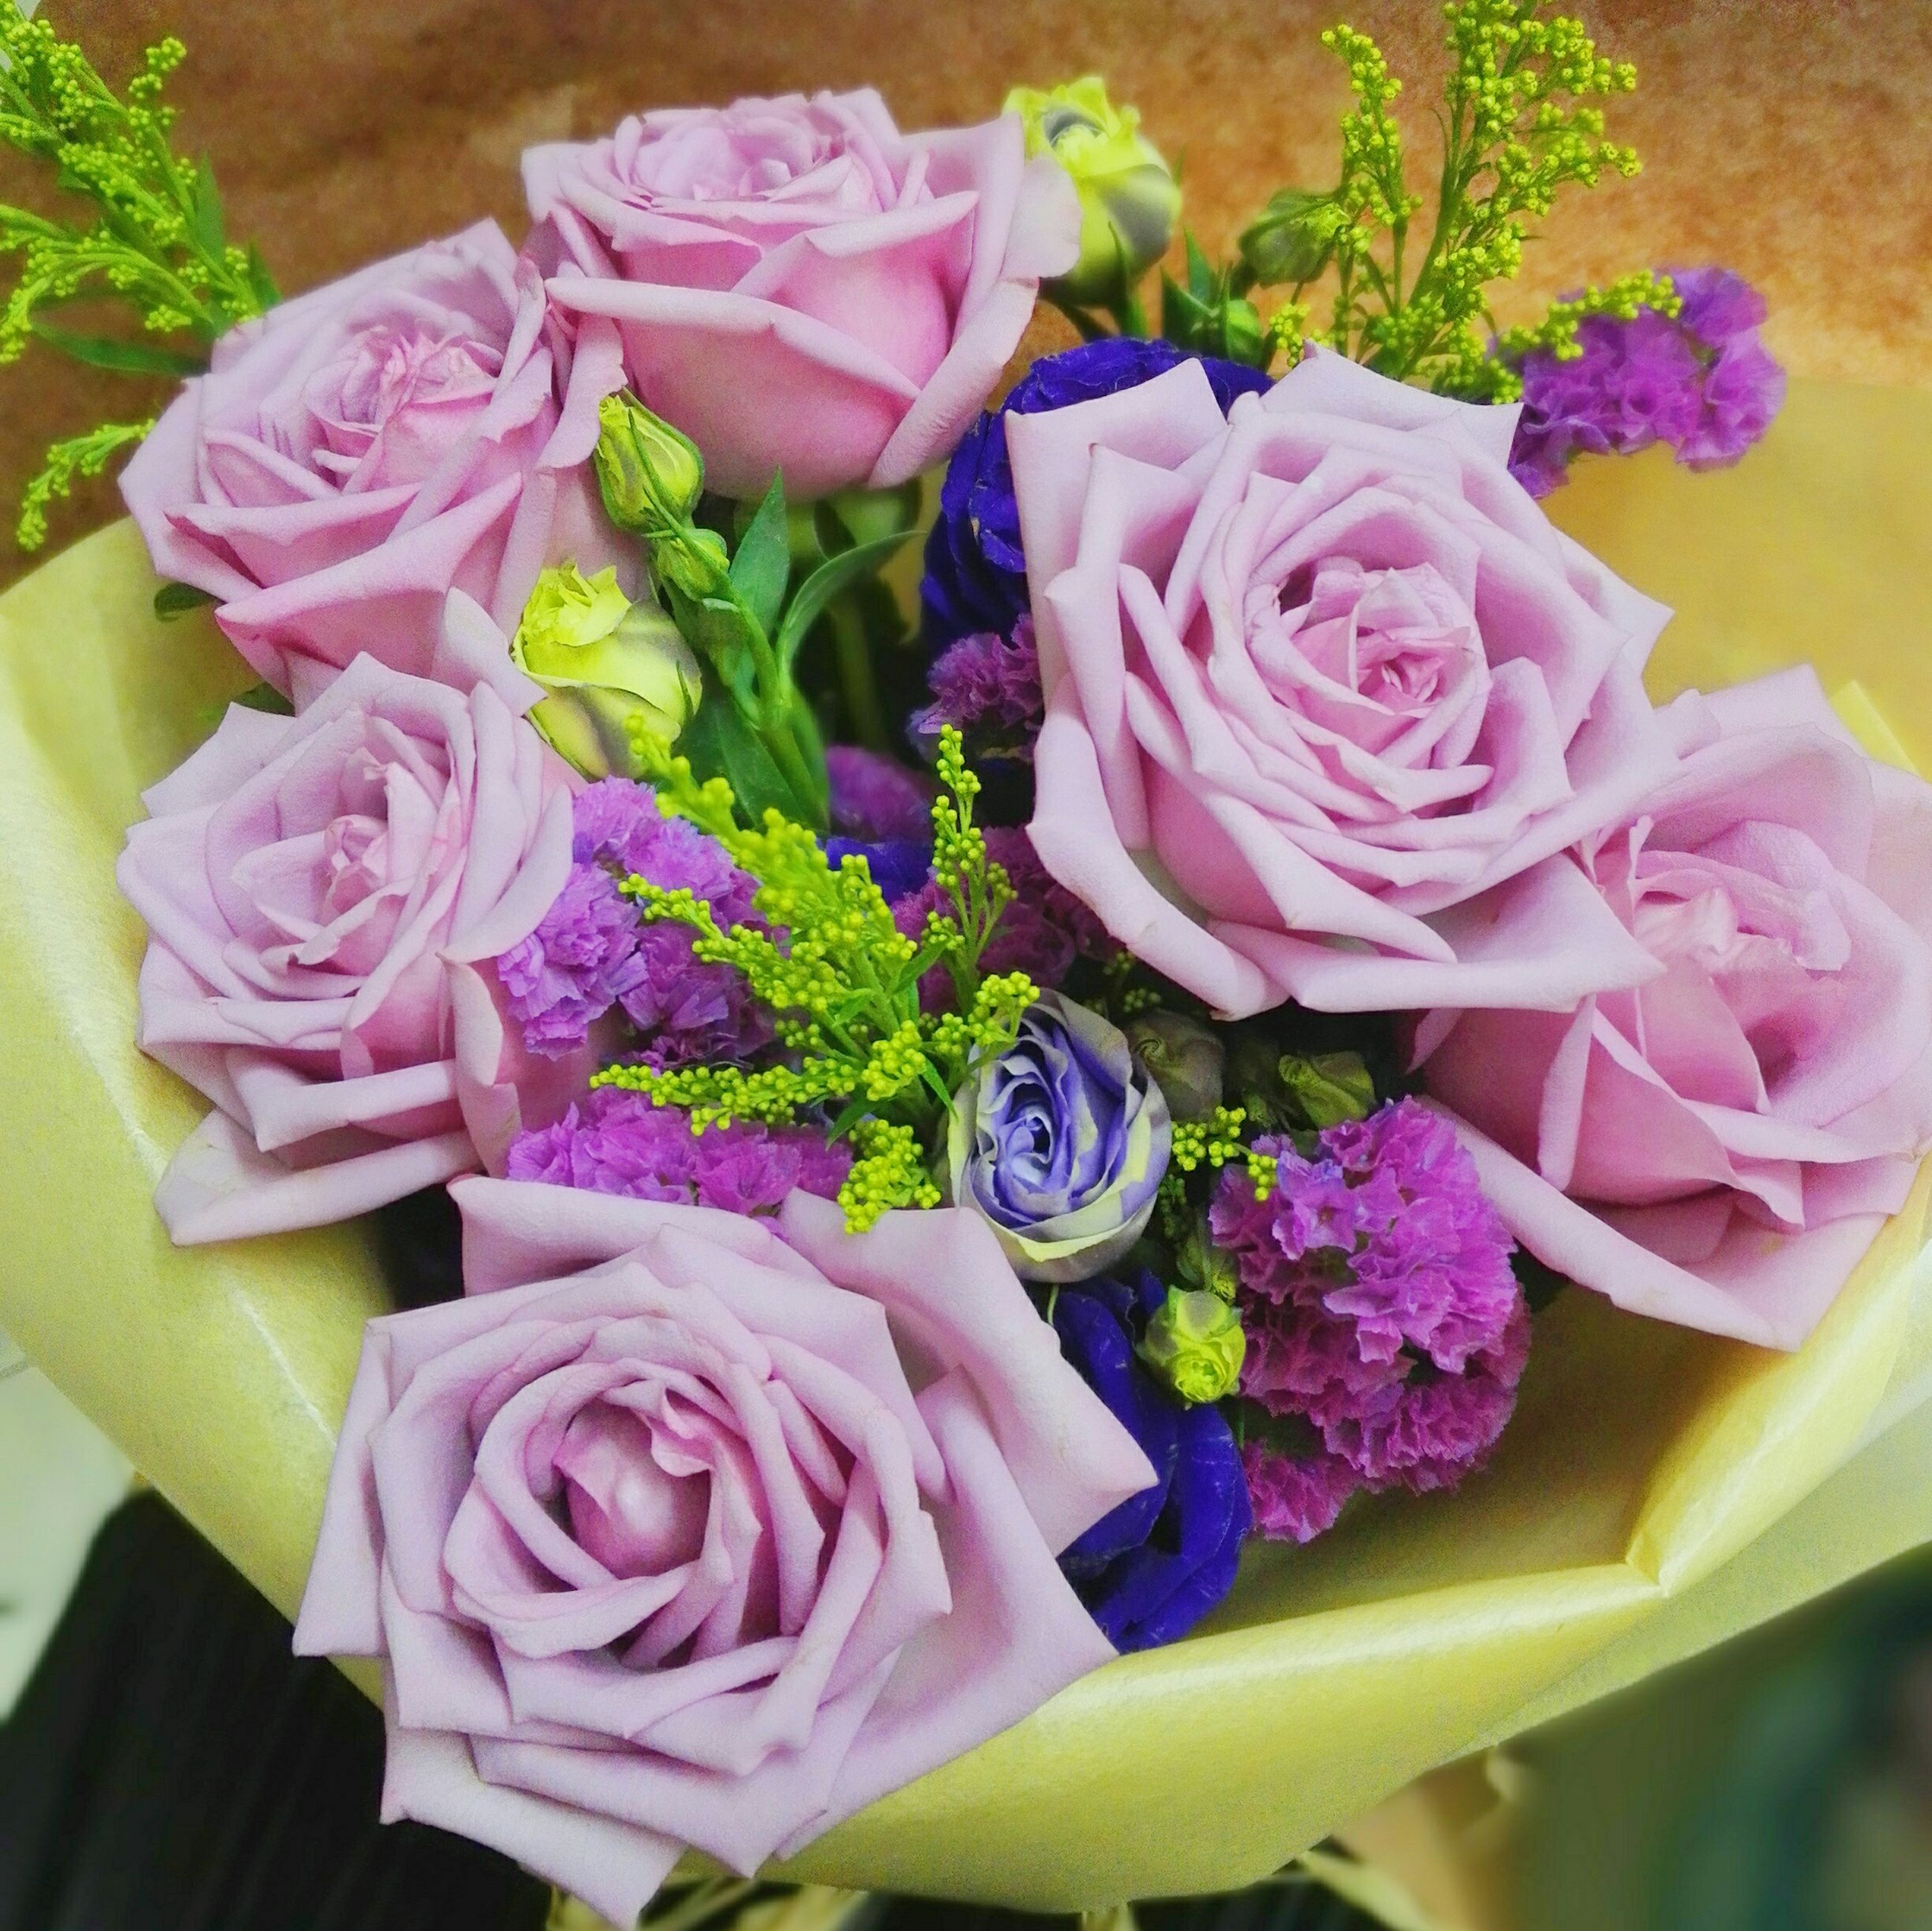 flower, freshness, petal, rose - flower, fragility, bouquet, flower head, indoors, pink color, bunch of flowers, beauty in nature, flower arrangement, high angle view, rose, close-up, multi colored, vase, nature, variation, blooming